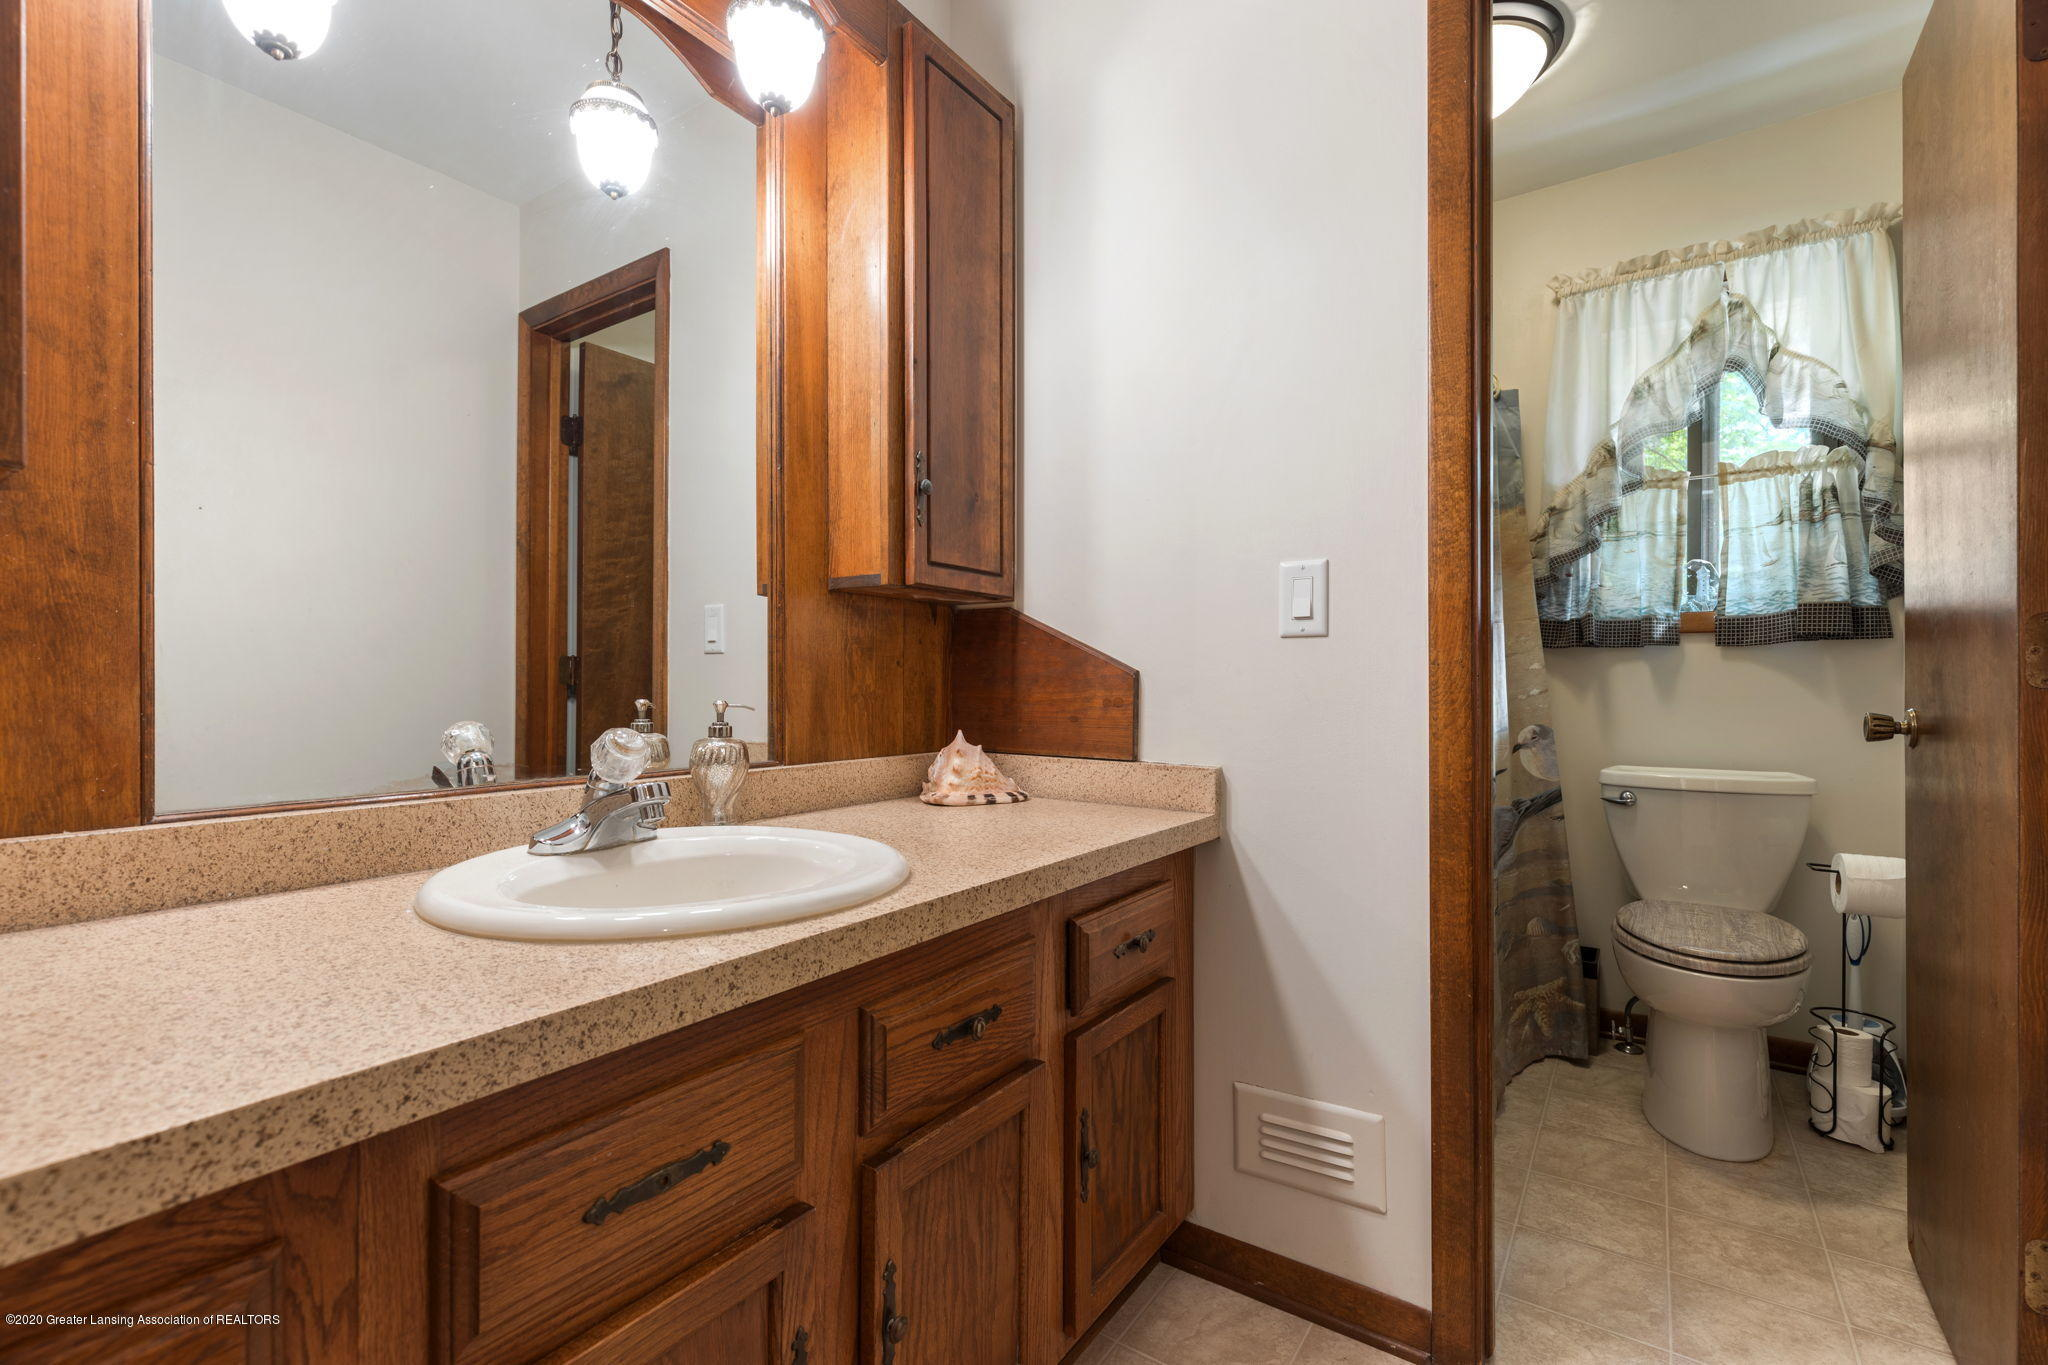 617 Green St - 21-web-or-mls-1P6A9468 - 21